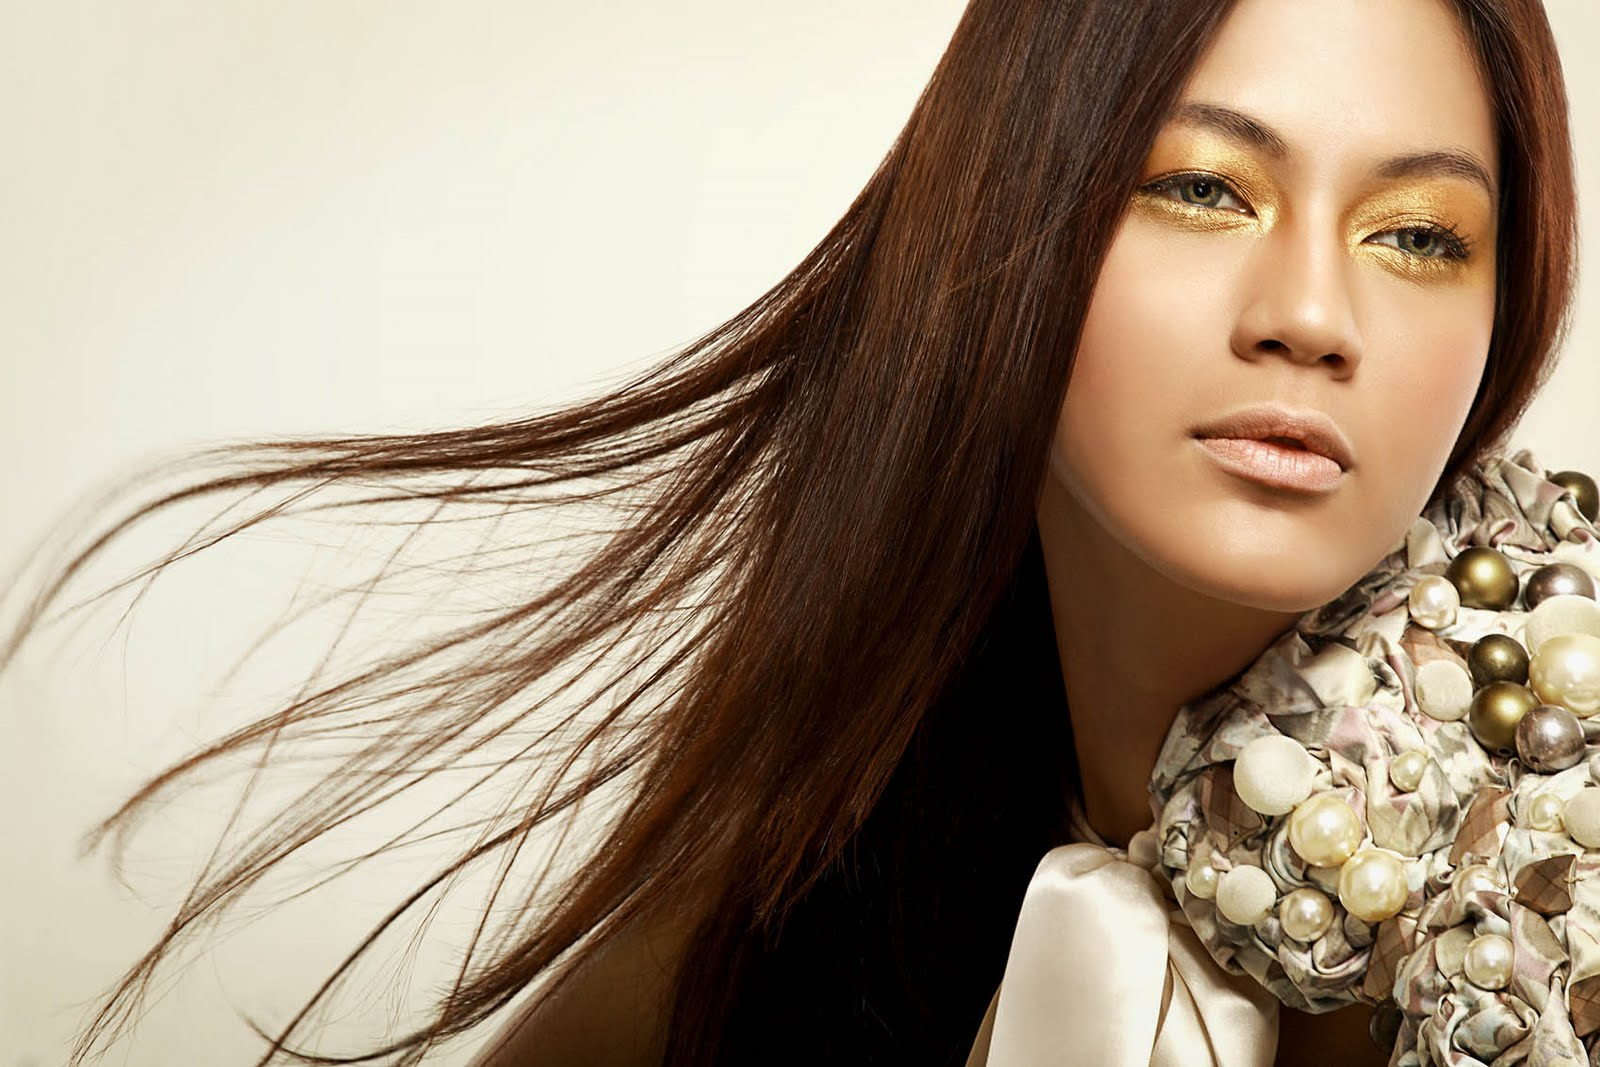 PAULA VERHOEVEN FOR Miss Universe INDONESIA 2012